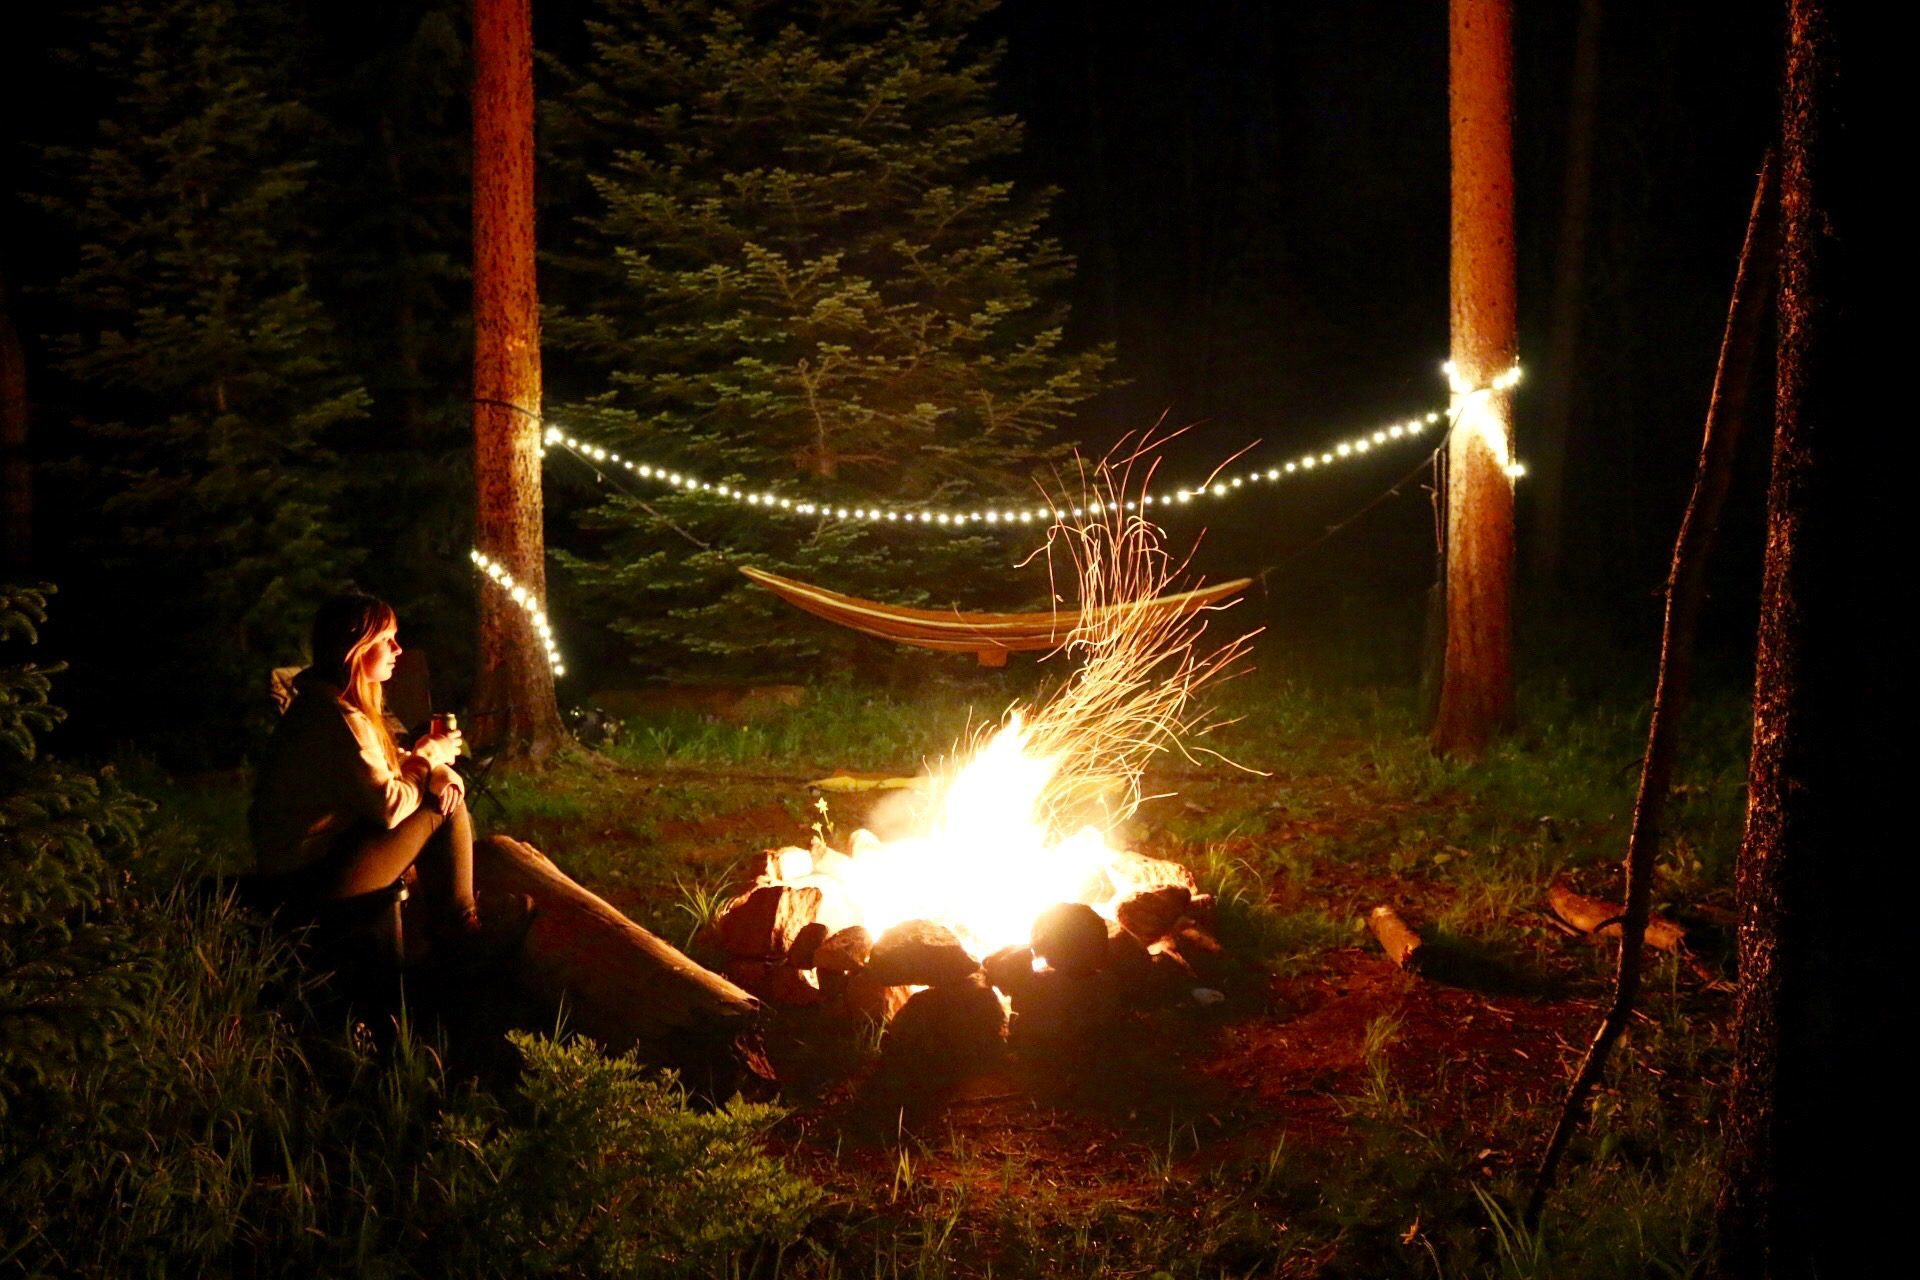 solar powered camping lights around hammock